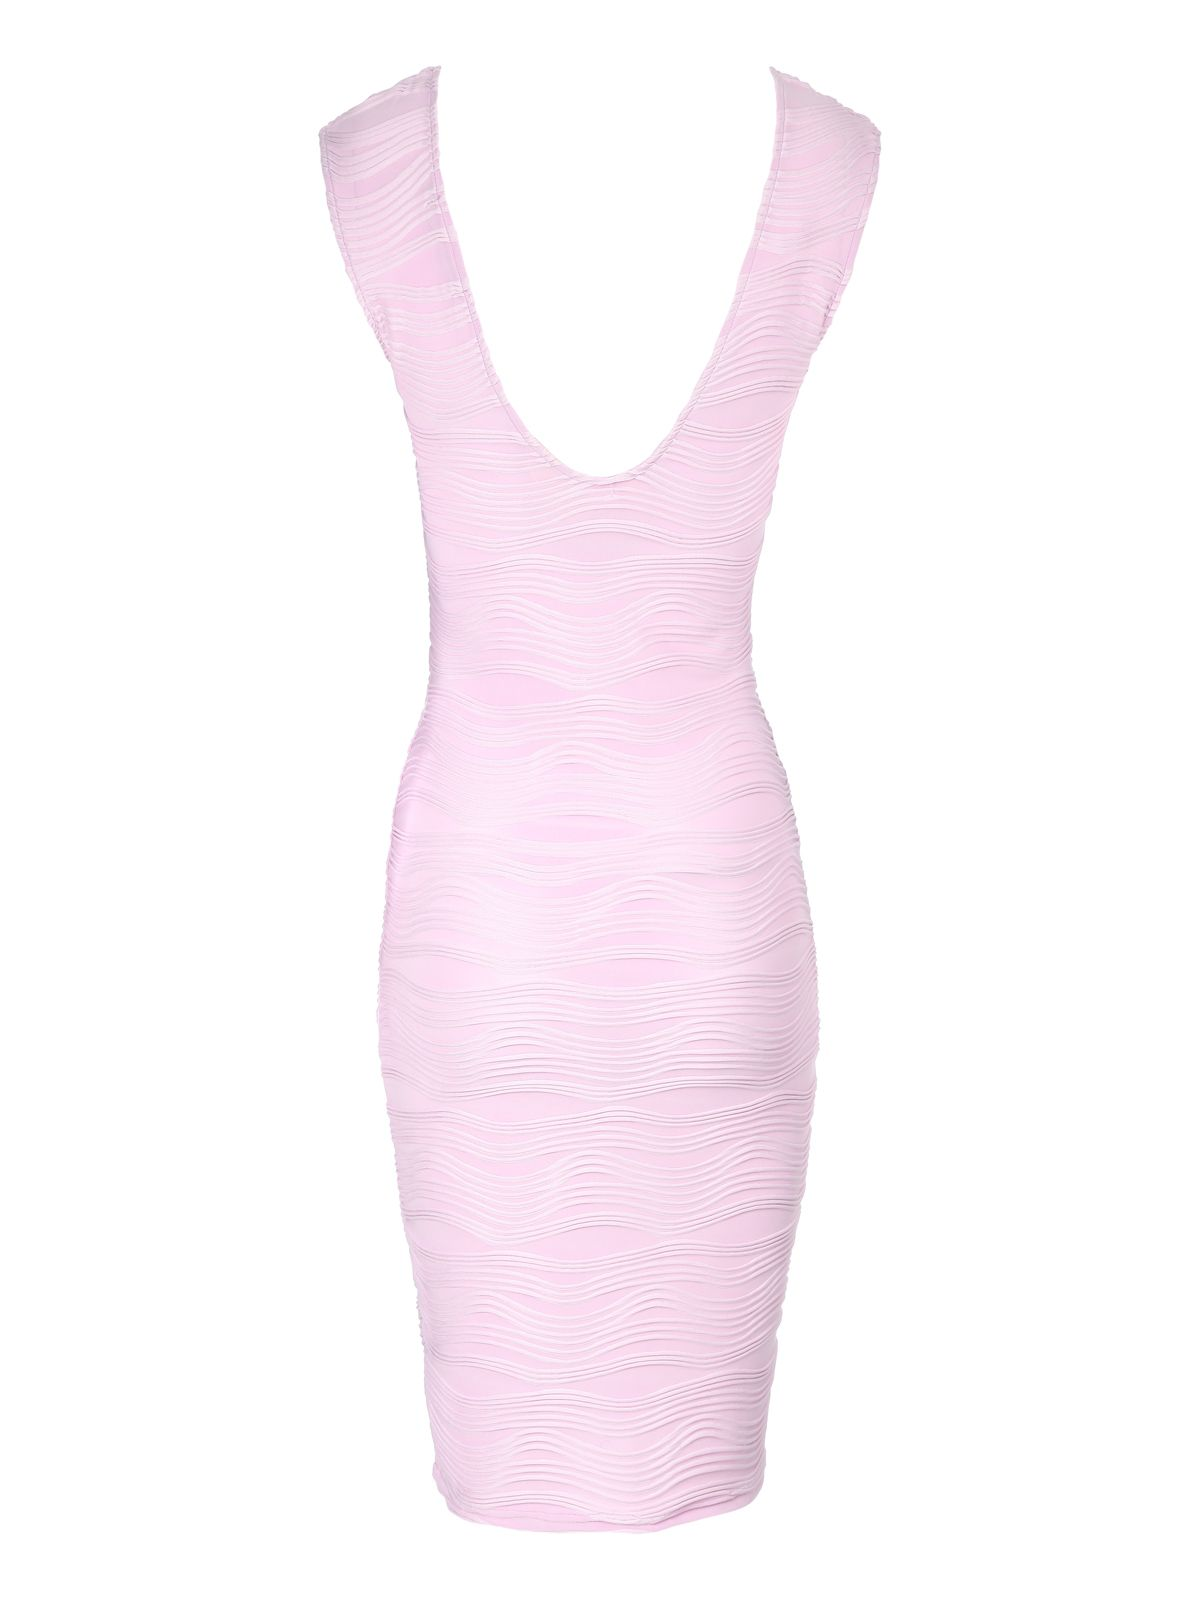 Ripple Textured Bodycon Dress